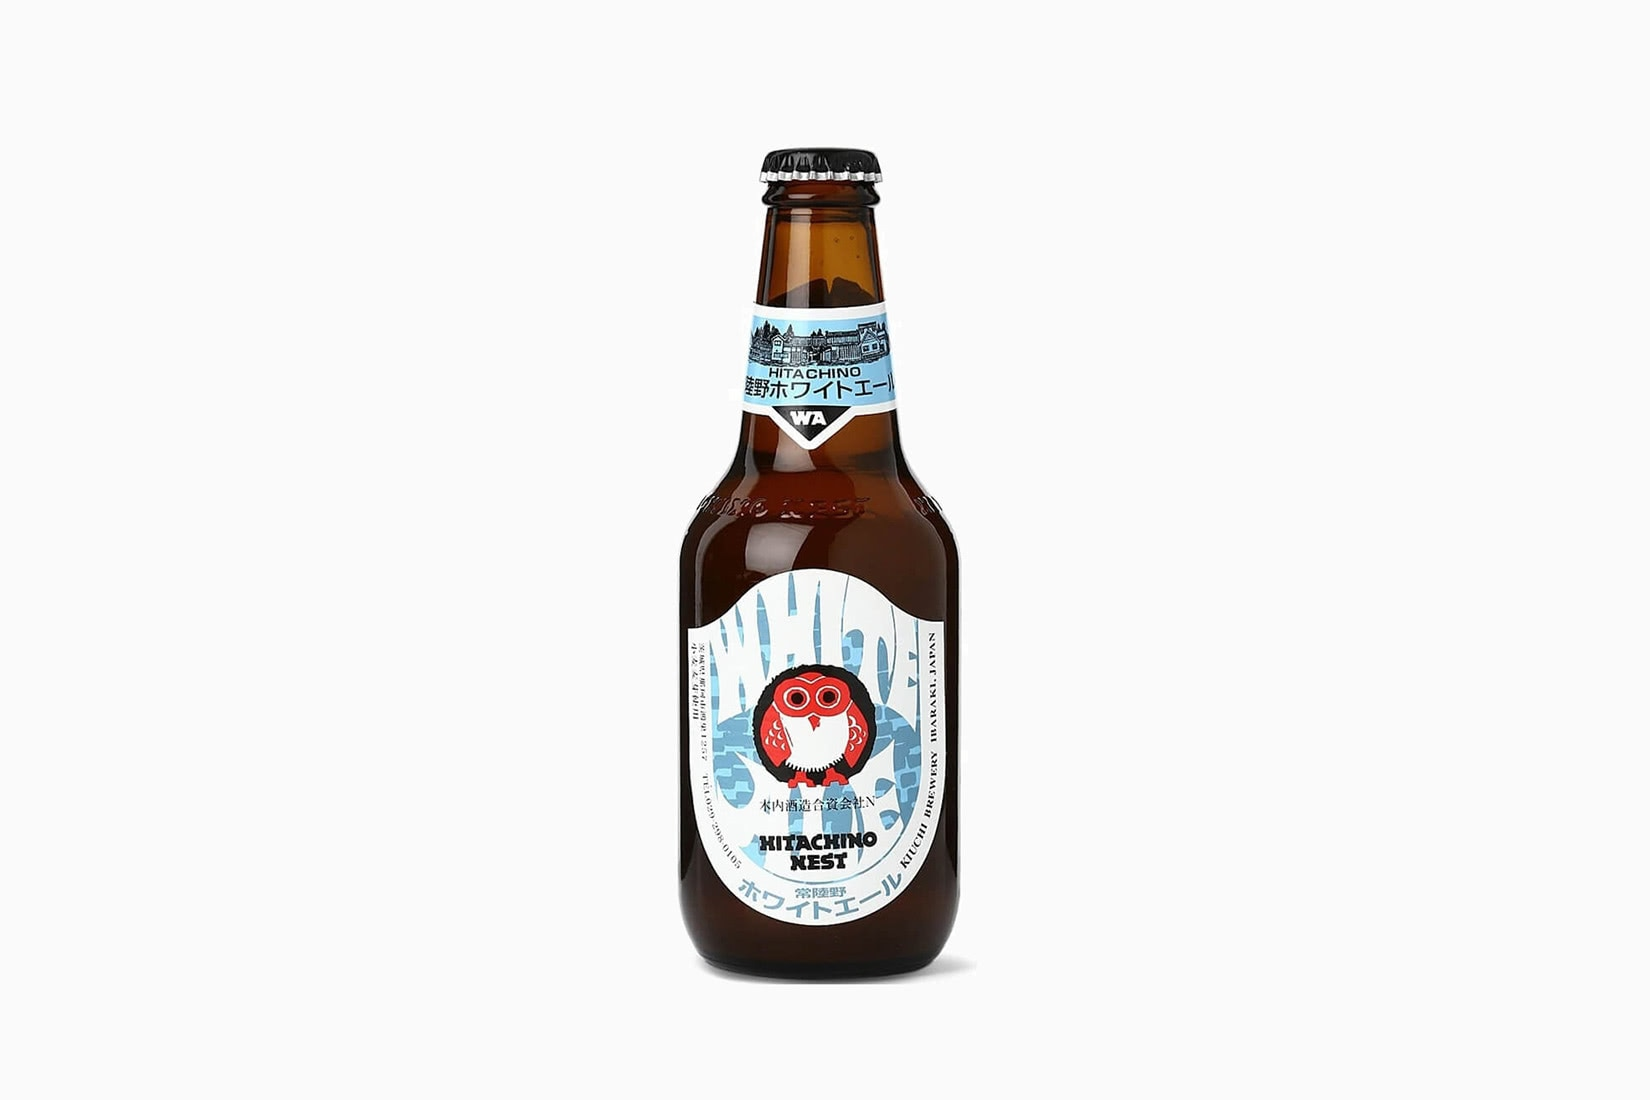 best beer brands hitachino nest white ale - Luxe Digital